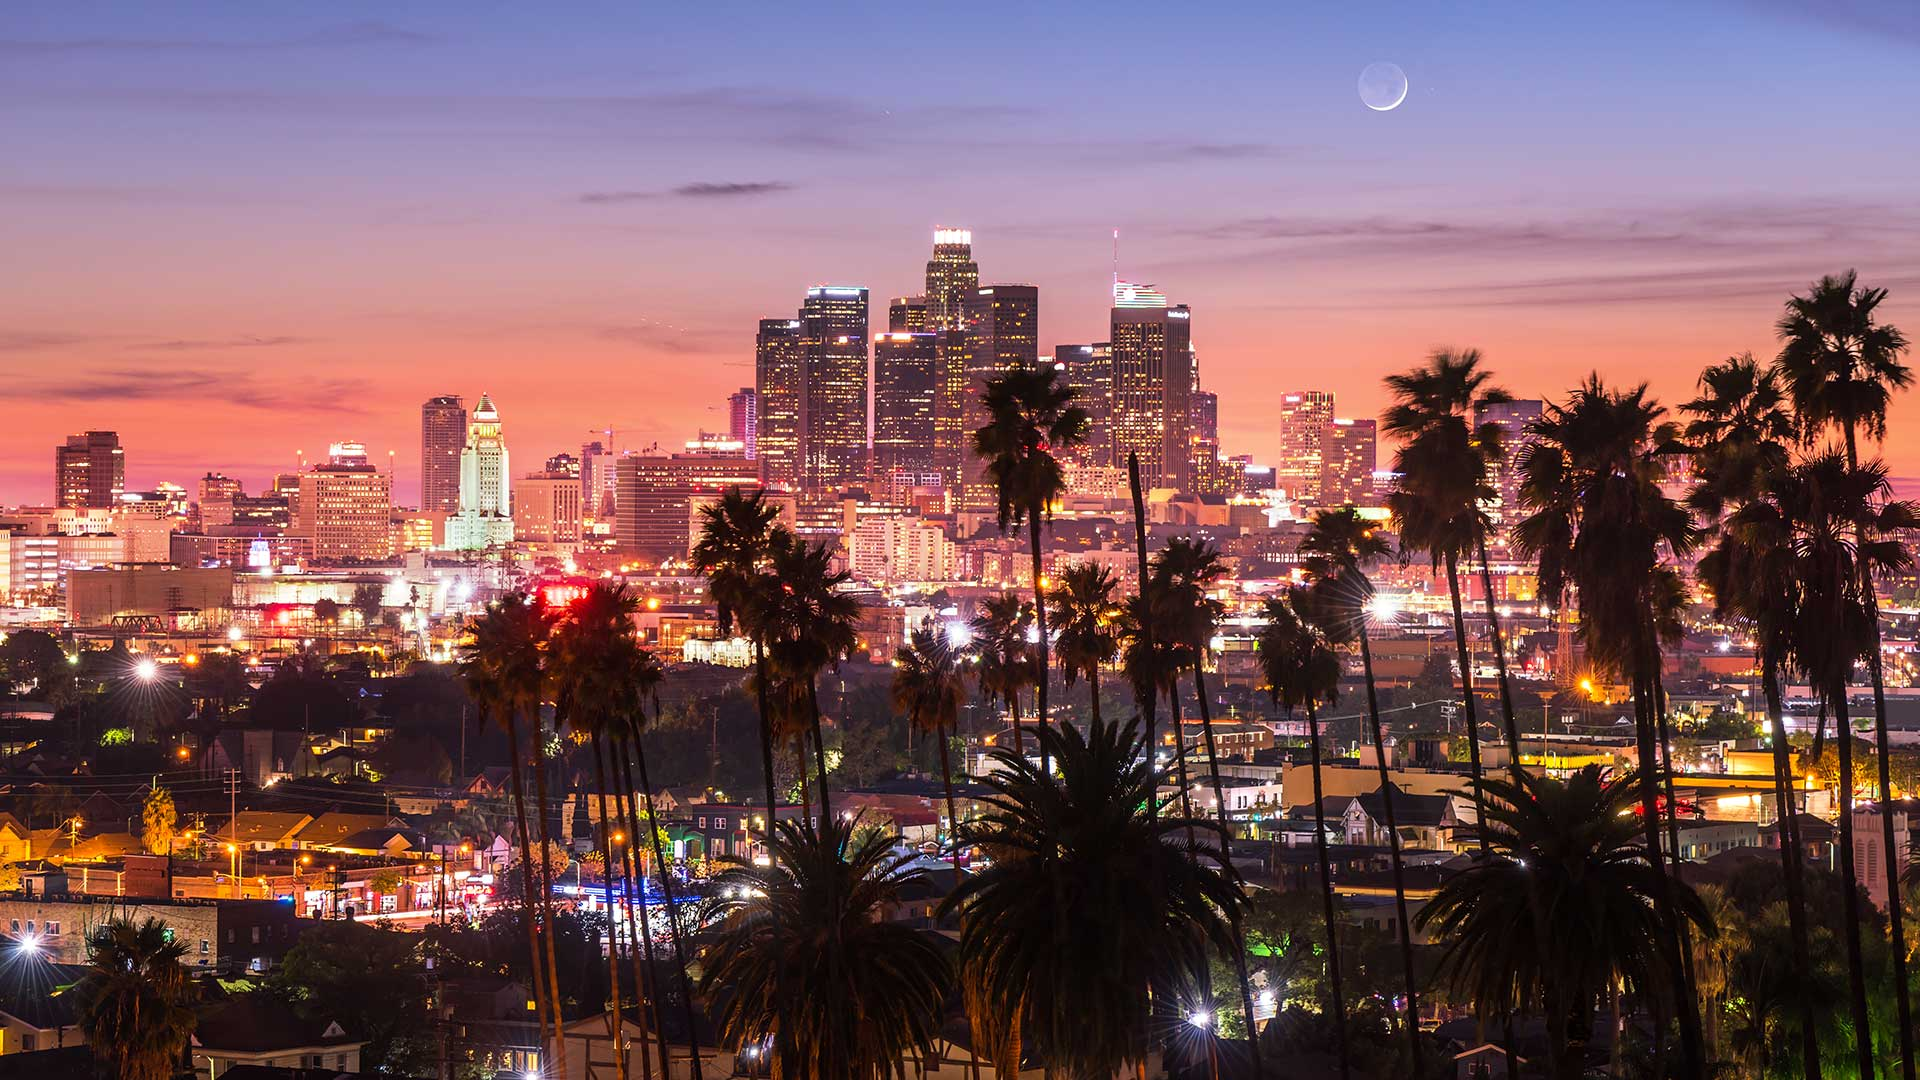 Panorama to illustrate dating in los angeles